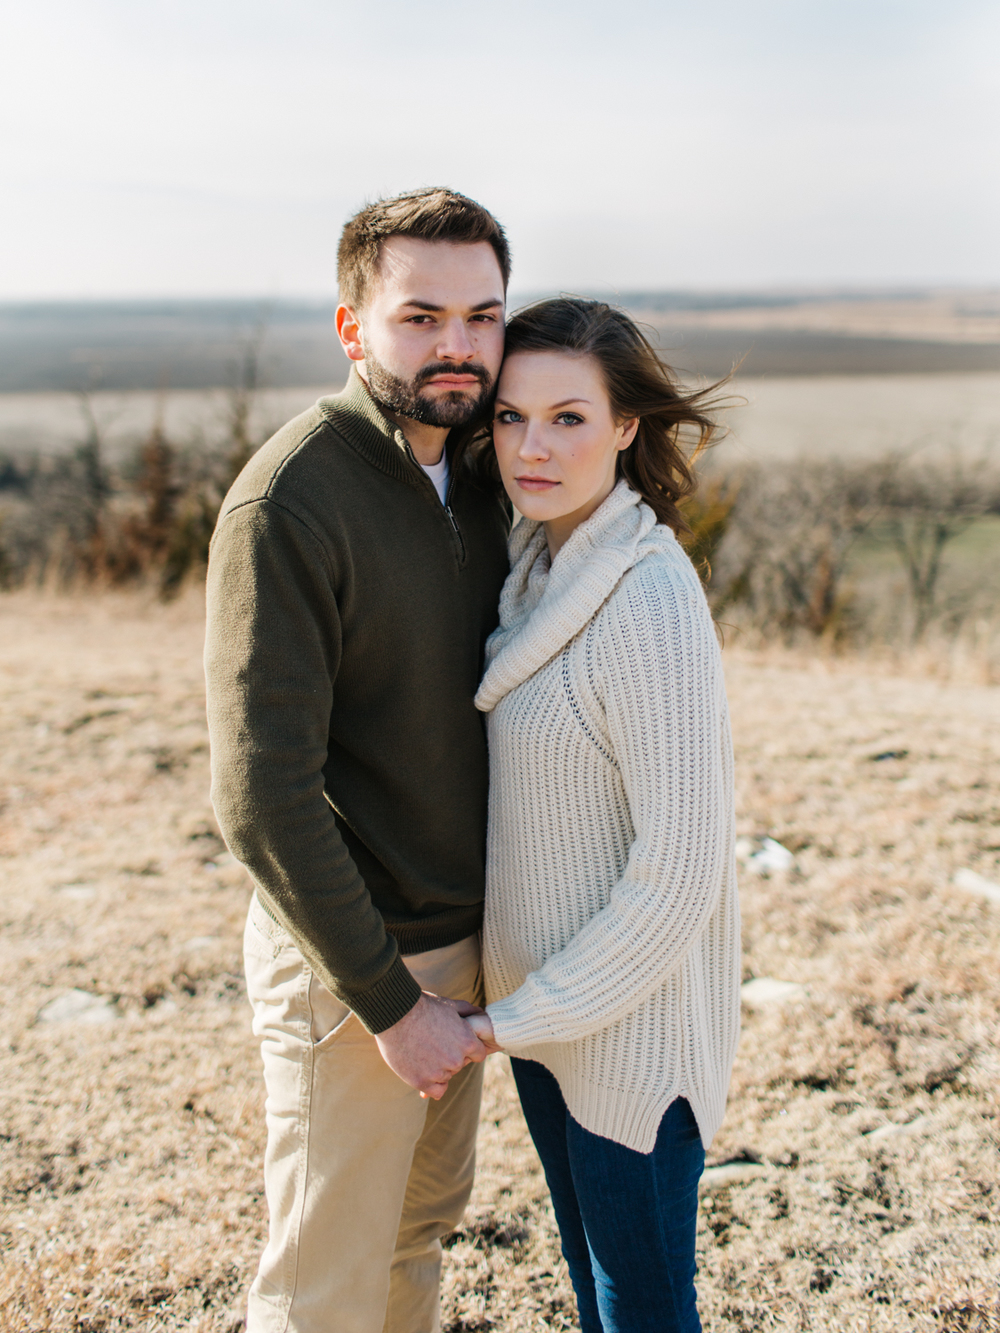 Wichita, Kansas Engagement Photographer - Neal Dieker - Wichita, Kansas Wedding Photographer-107.jpg